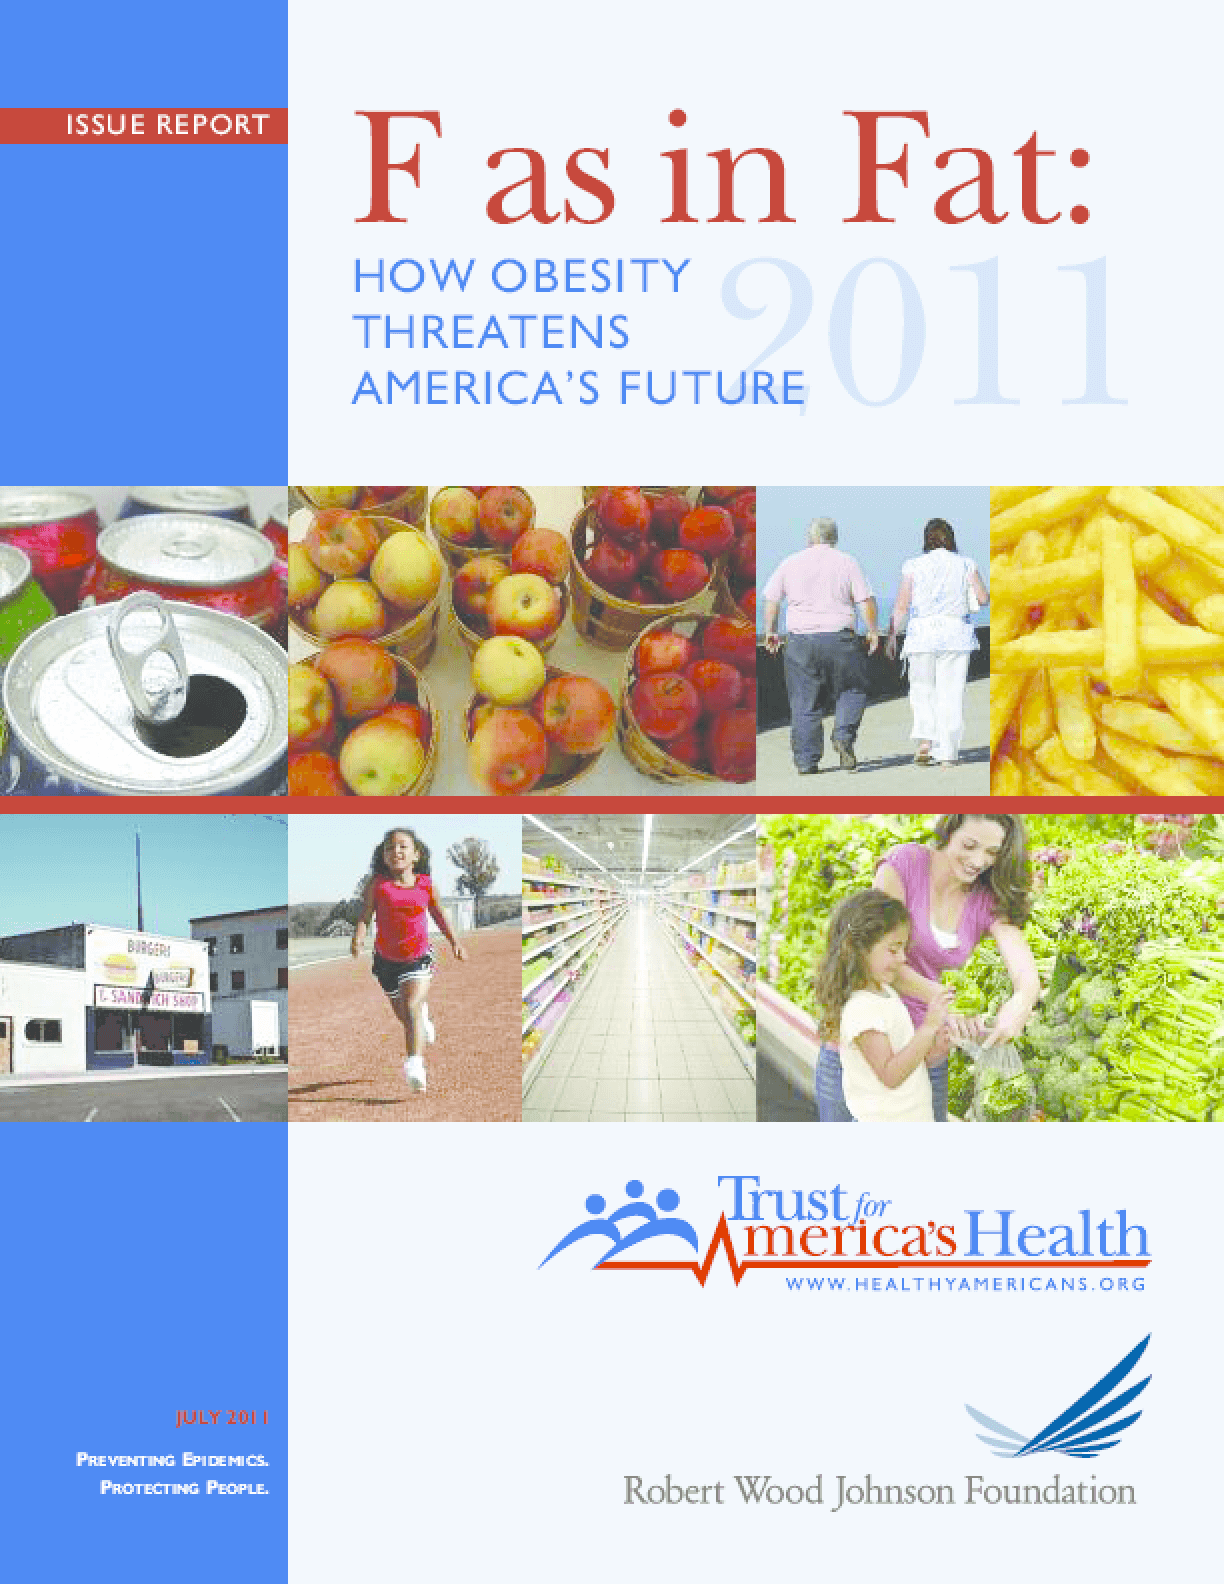 F as in Fat: How Obesity Threatens America's Future 2011